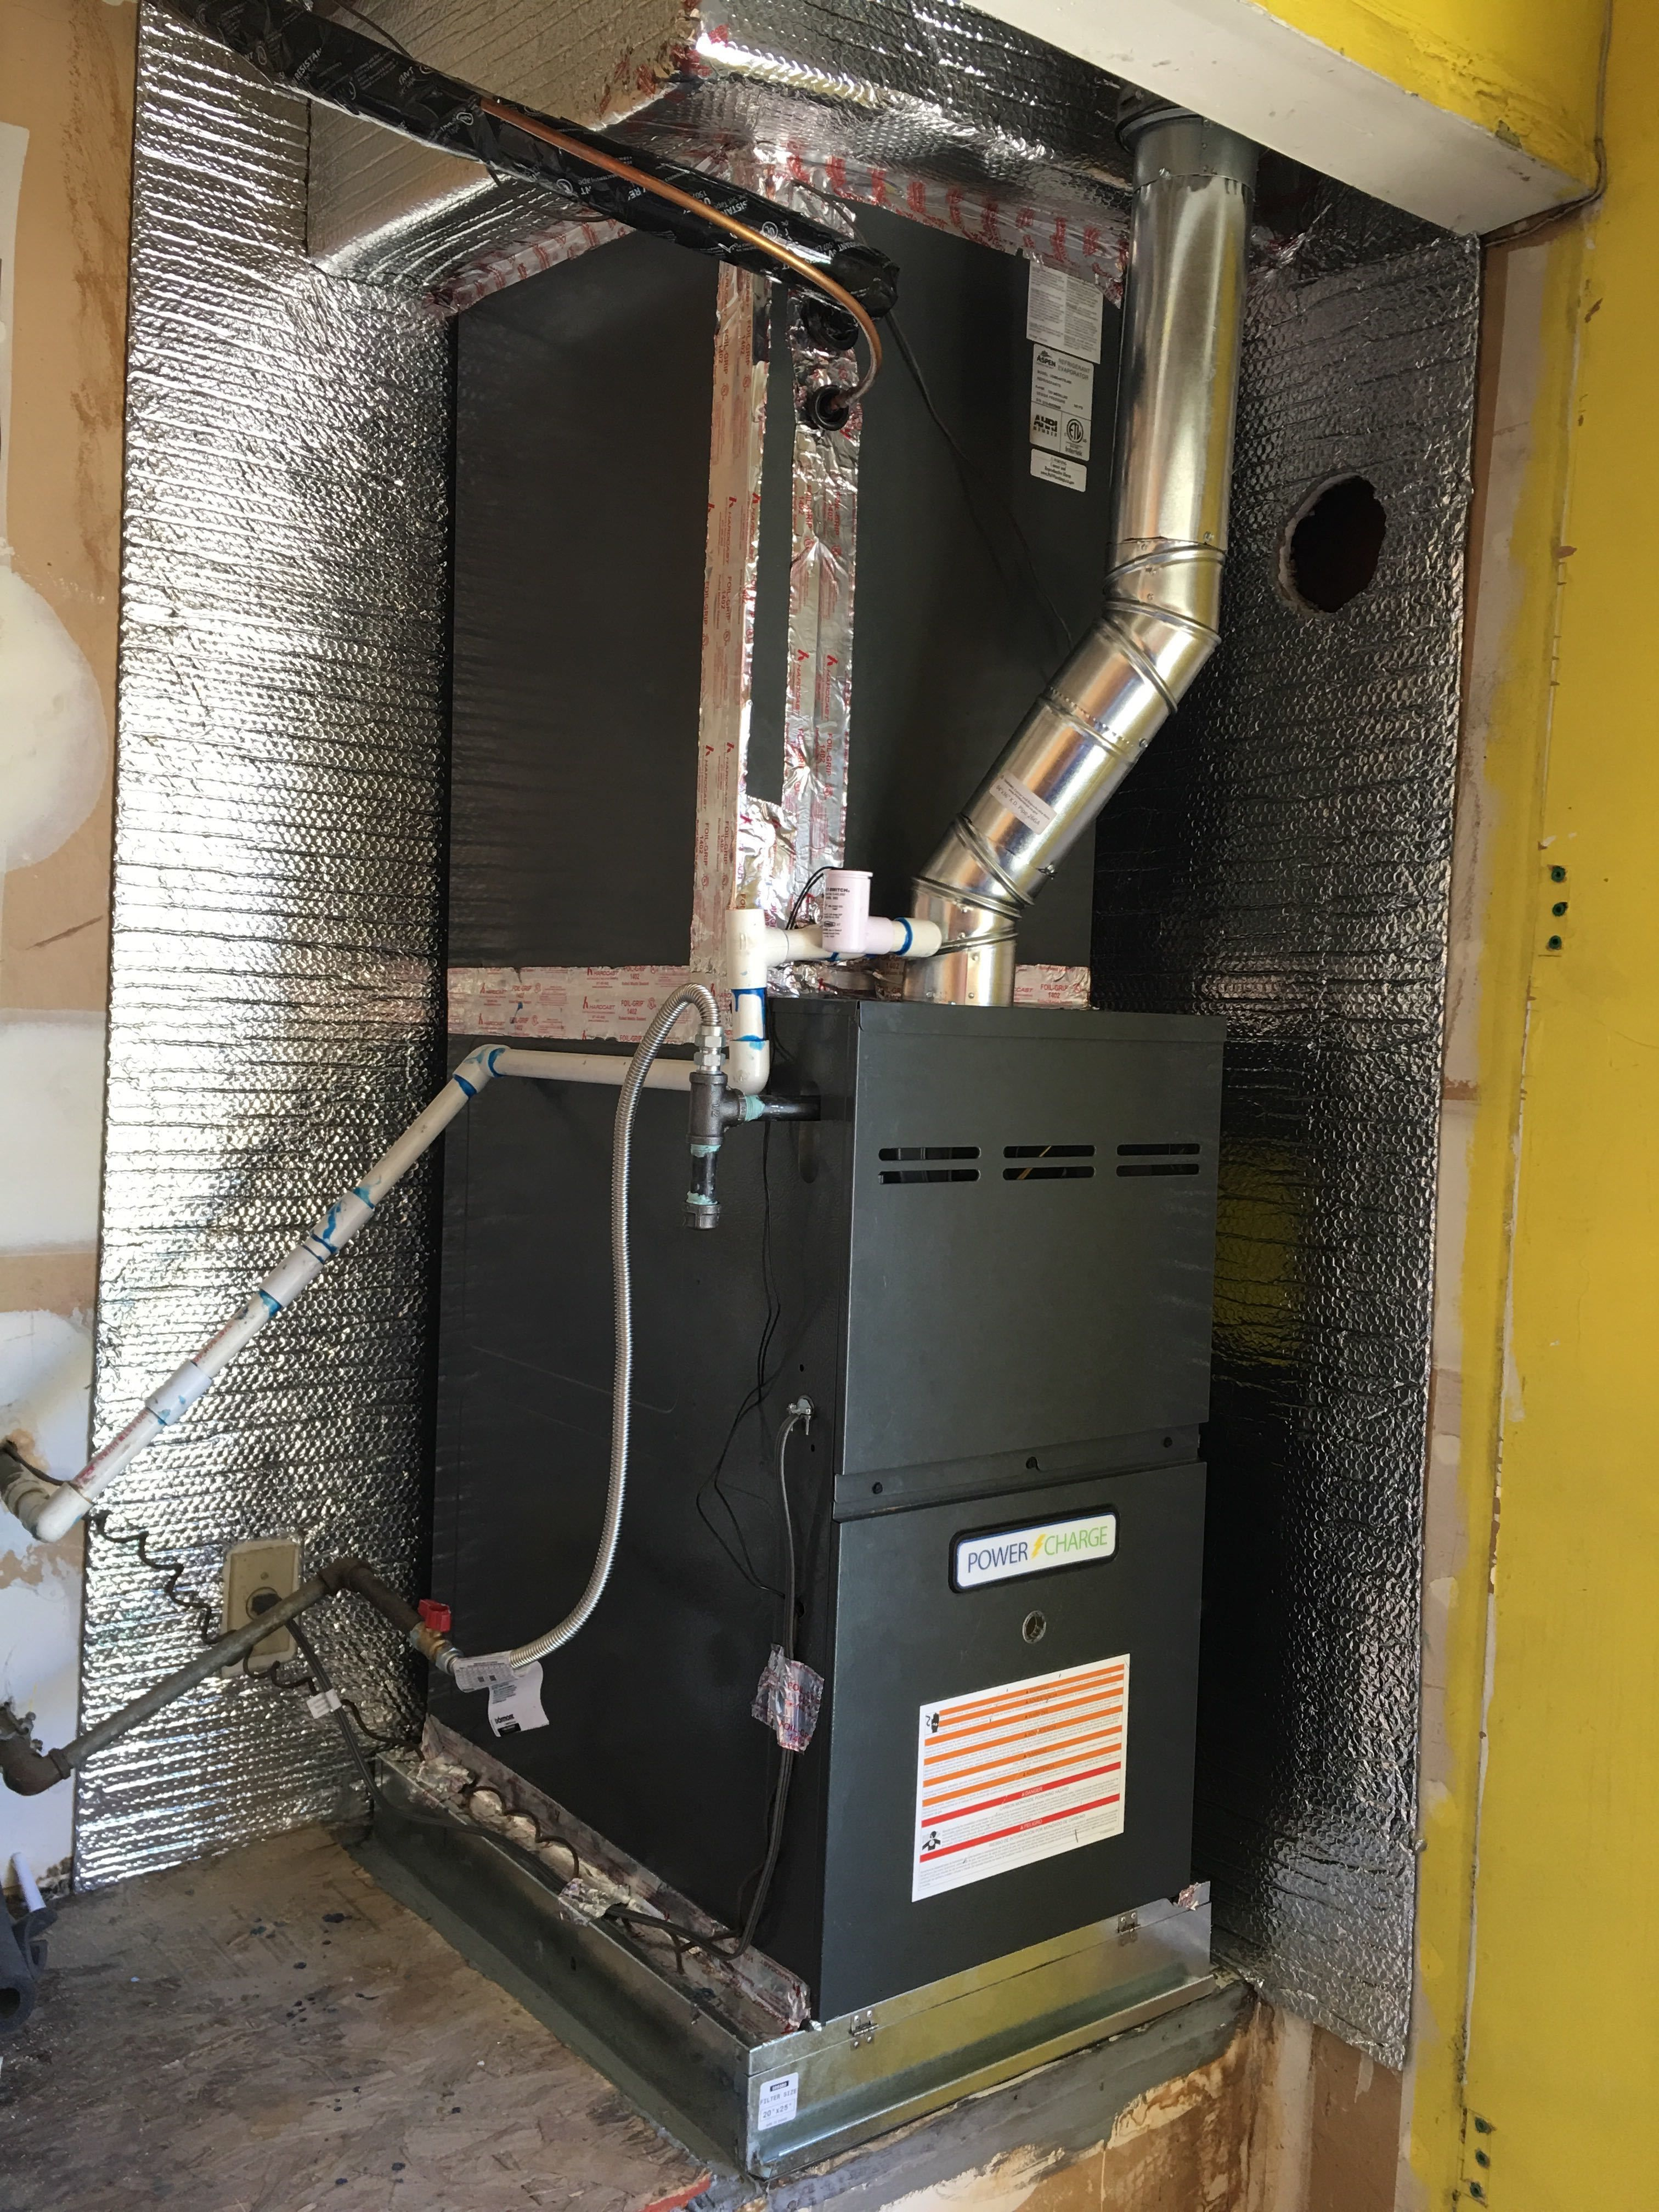 Upgrade your furnace and air conditioning system to a